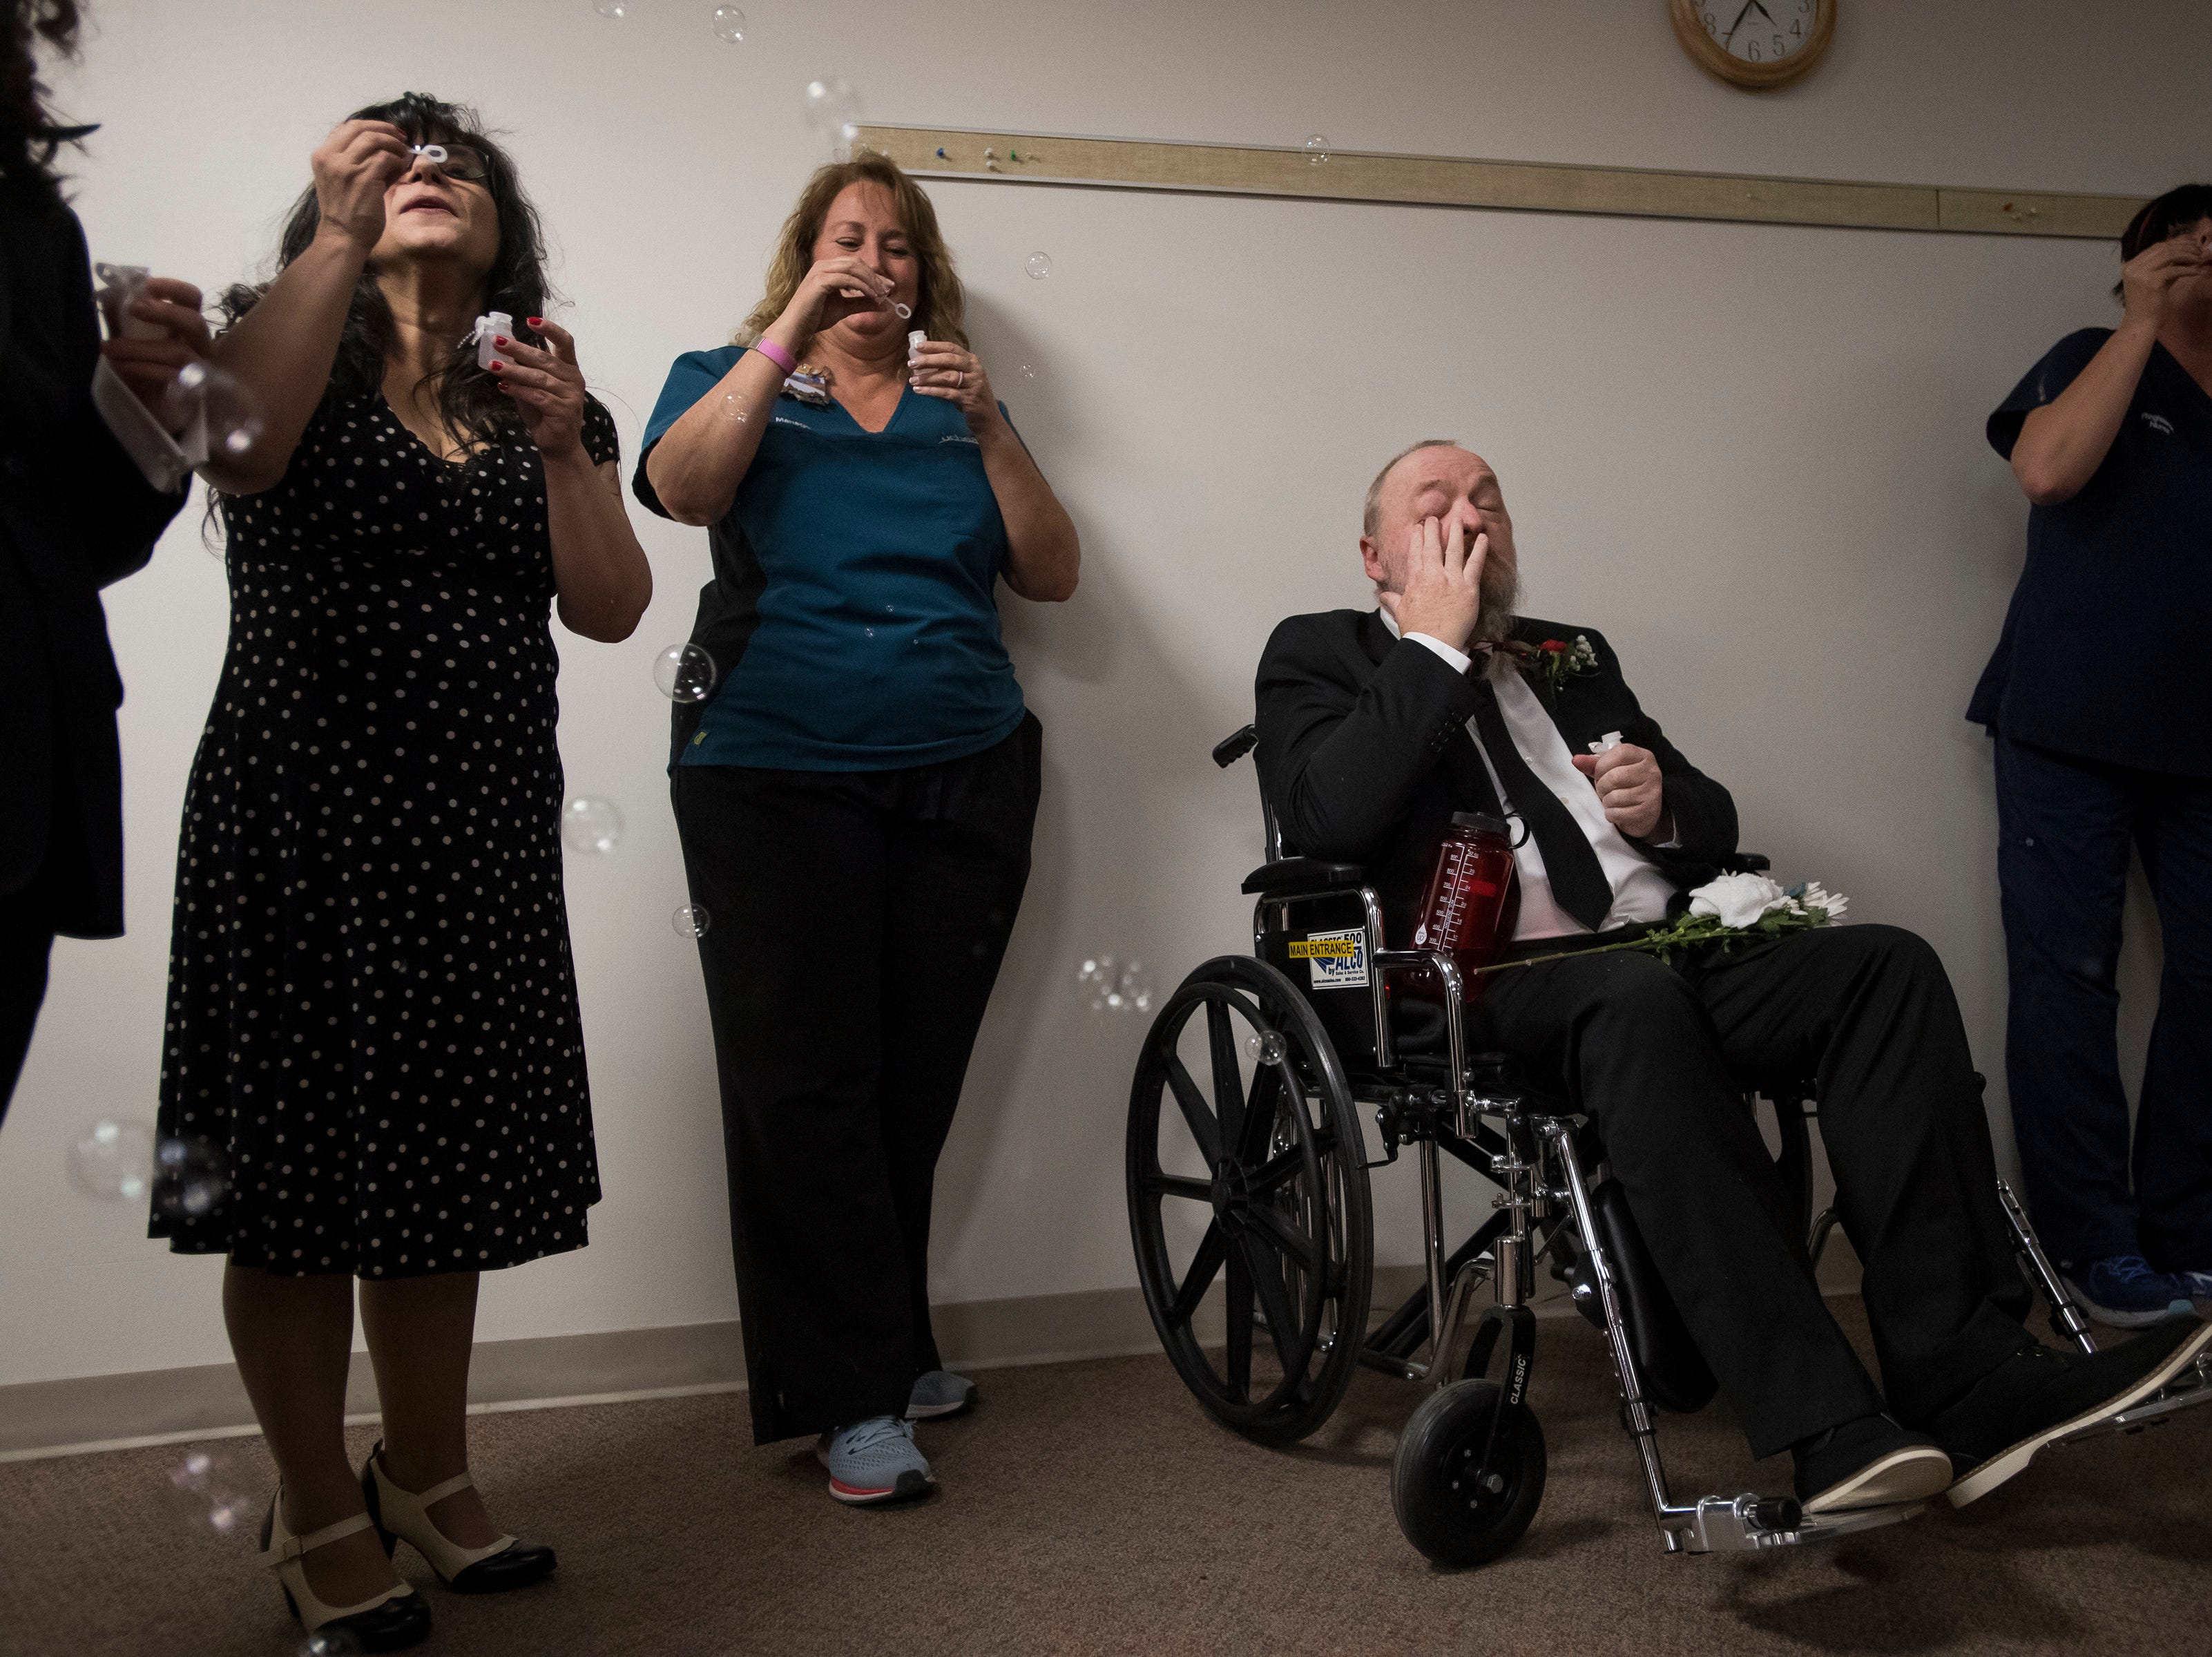 Father of the bride Paul Justice tears after his daughter and son-in-law Grace and James Christian walk past before their wedding reception on Thursday, Feb. 14, 2019, at UCHealth Poudre Valley Hospital in Fort Collins, Colo.